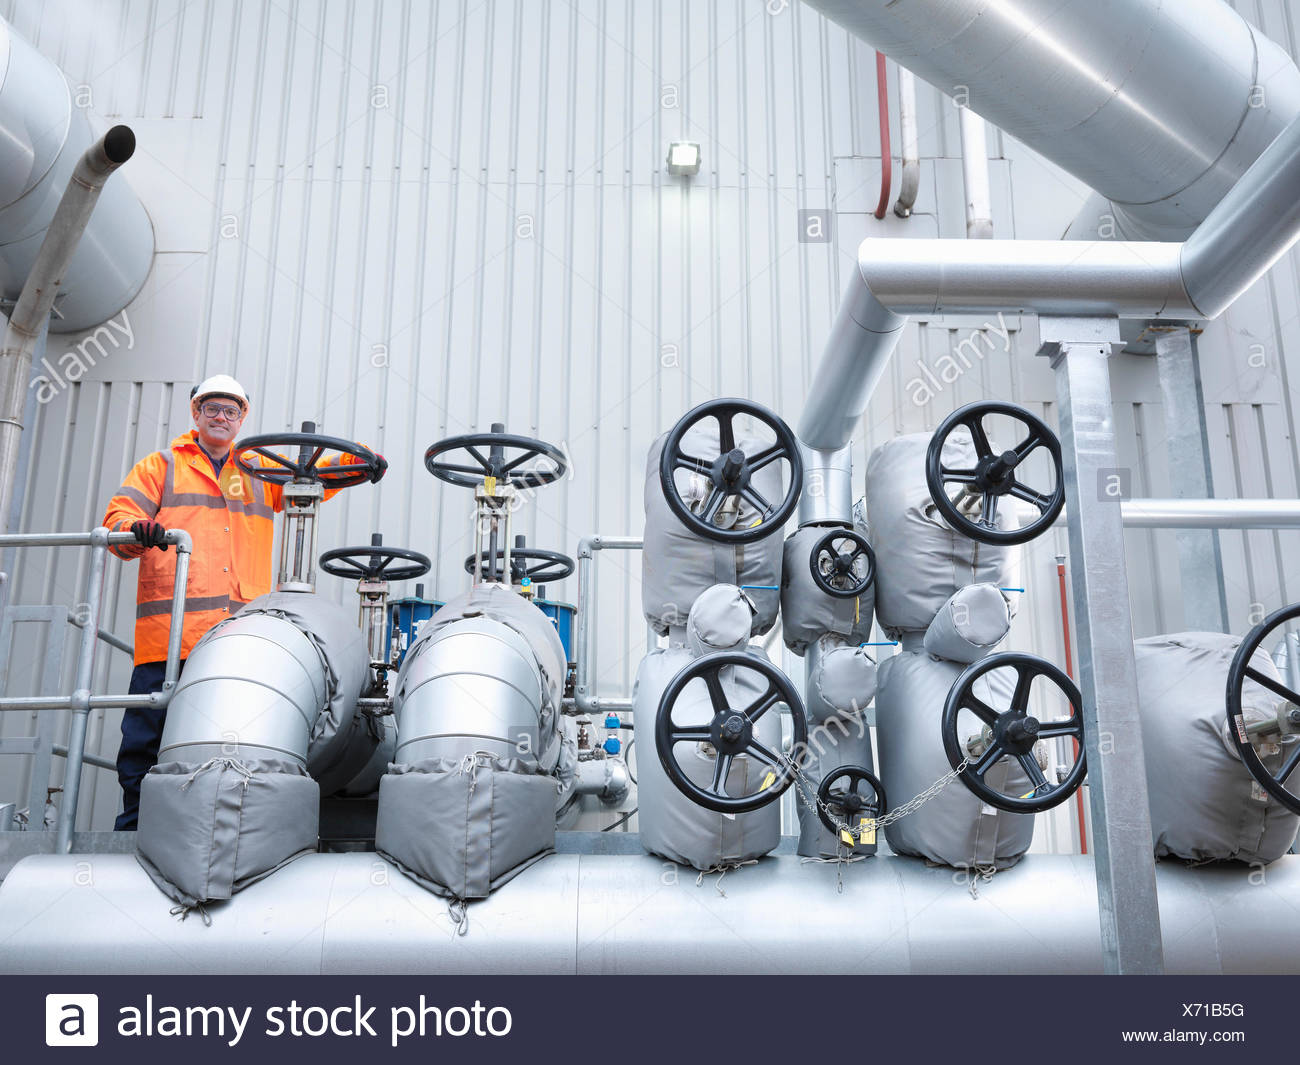 Worker standing by valves of gas fired power station - Stock Image